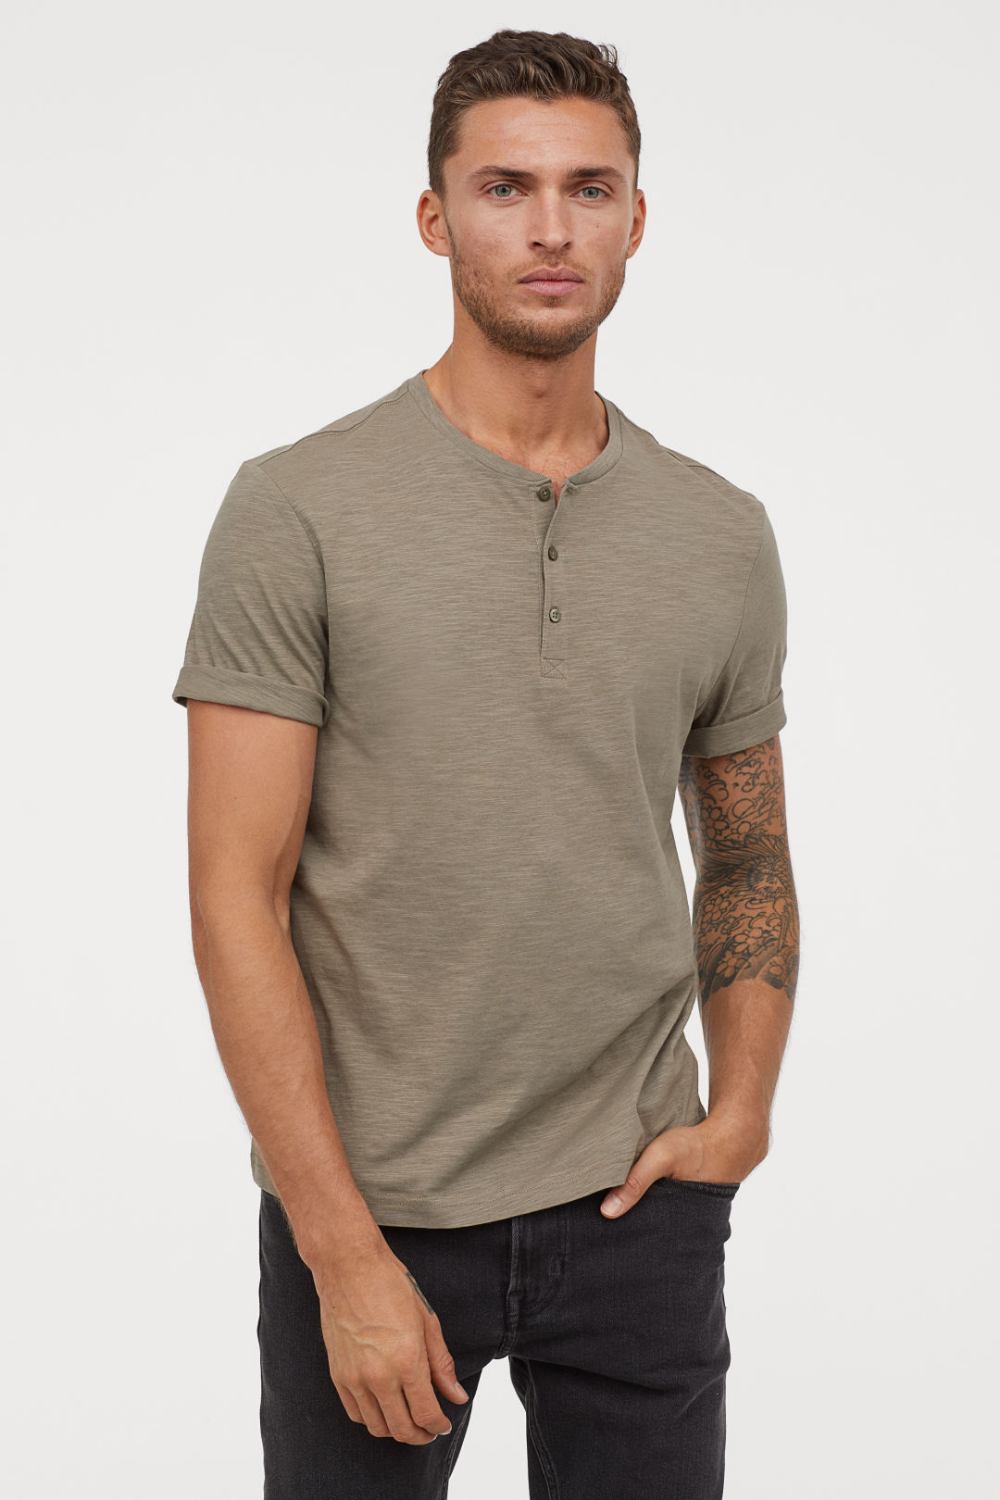 Mens Slub Henleys T-Shirt Short Sleeve Lightweight Relaxed Fit Casual with 3 Buttons Placket Round Neck Shirts